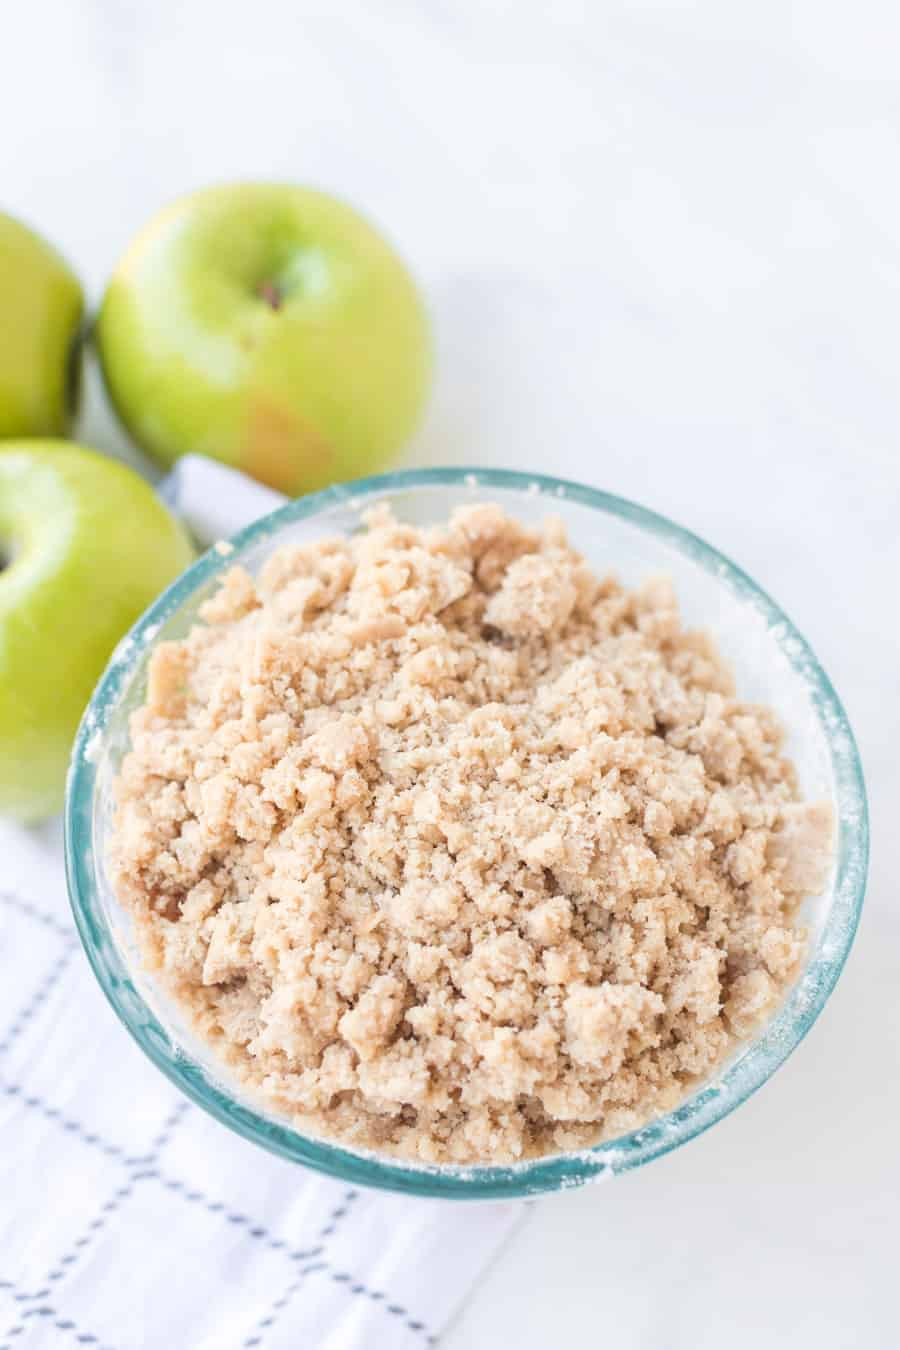 Apple crumb cake is a sweet, crumbly, and delicious fruit dessert that you can make on a cool fall day to use up the rest of those apples lying around! Baking made super simple, this easy apple crumb cake comes together easily with your favorite kind of apples and a sugar-cinnamon crumbly topping! #crumbcake #applecrumbcake #cake #apple #applecake #baking #dessert